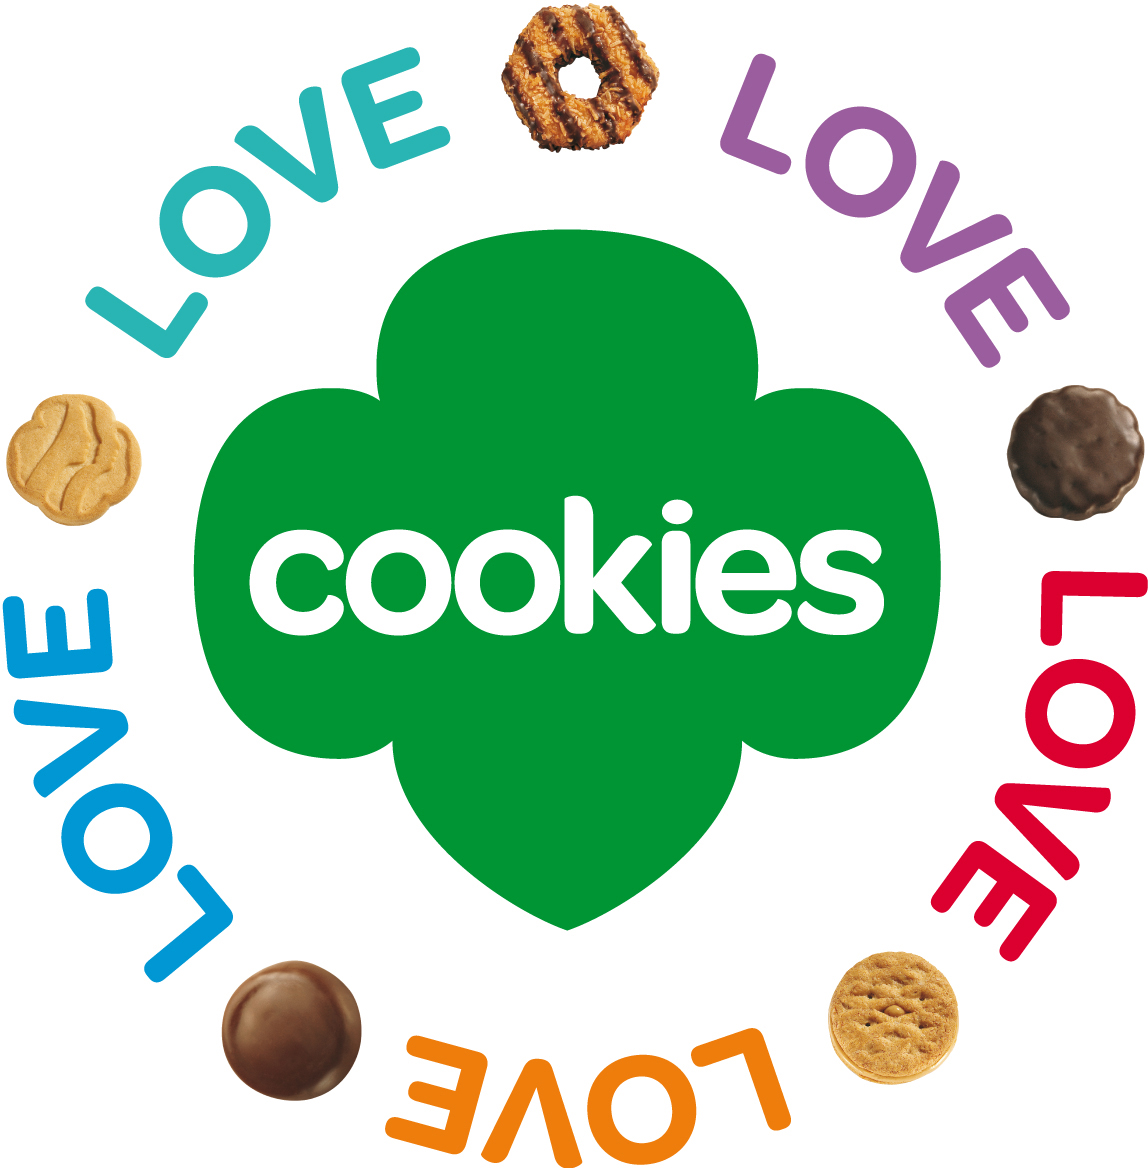 Girl scout cookies clipart clip free library Girl Scout Cookie Clip Art N2 free image clip free library